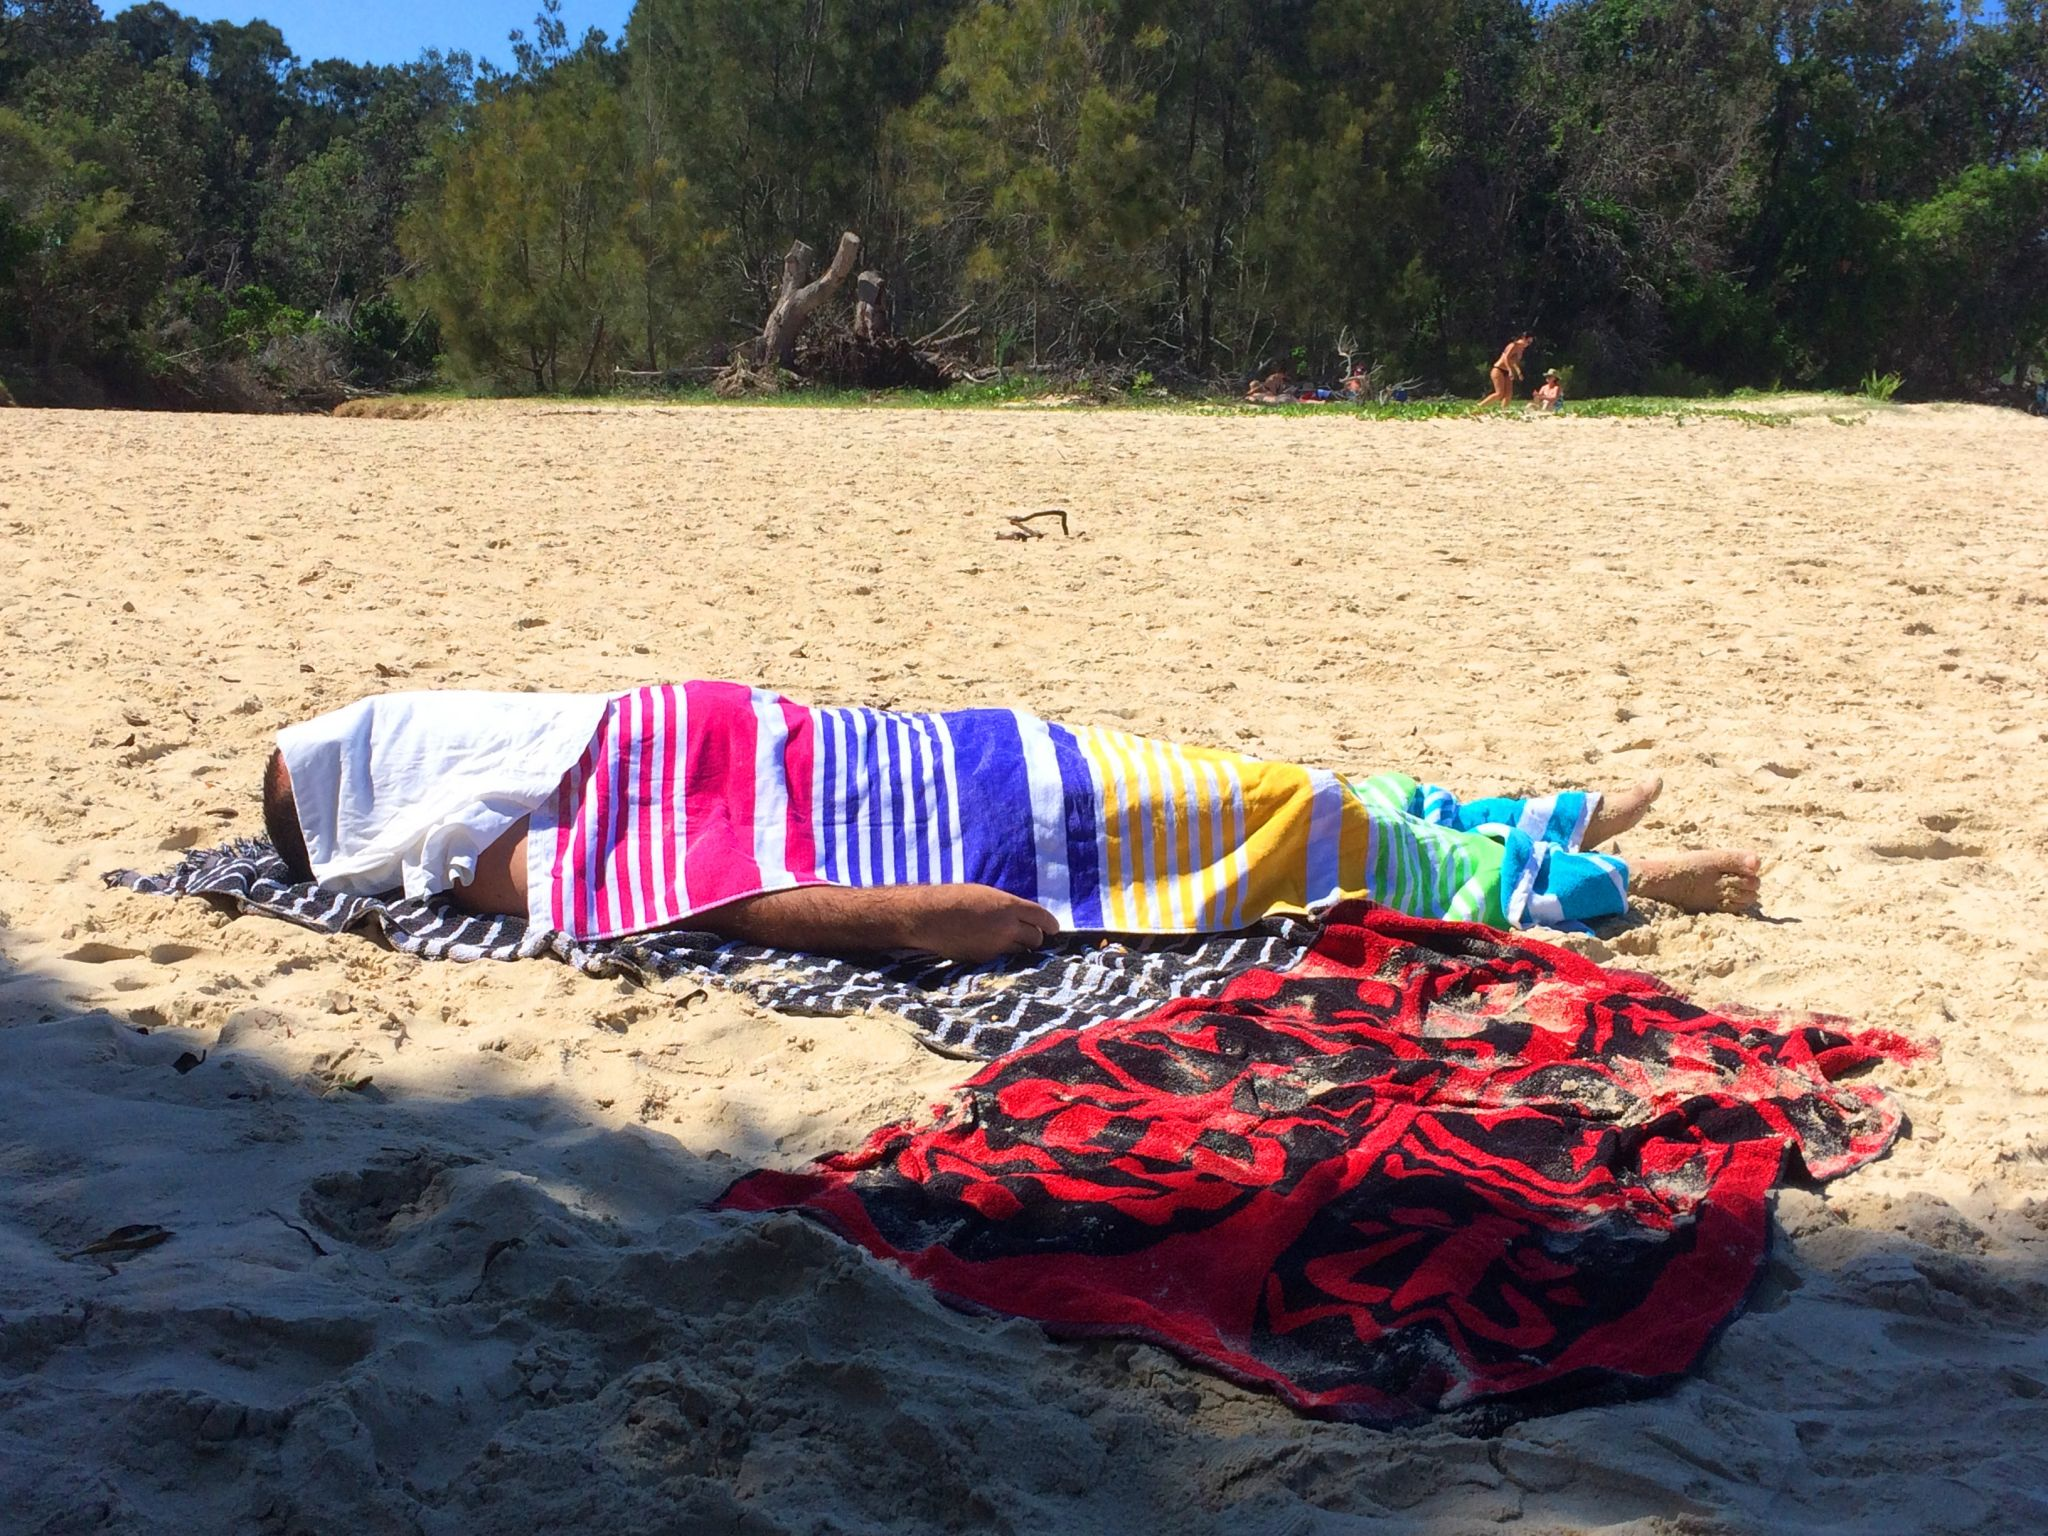 Sleeping under towels on beach